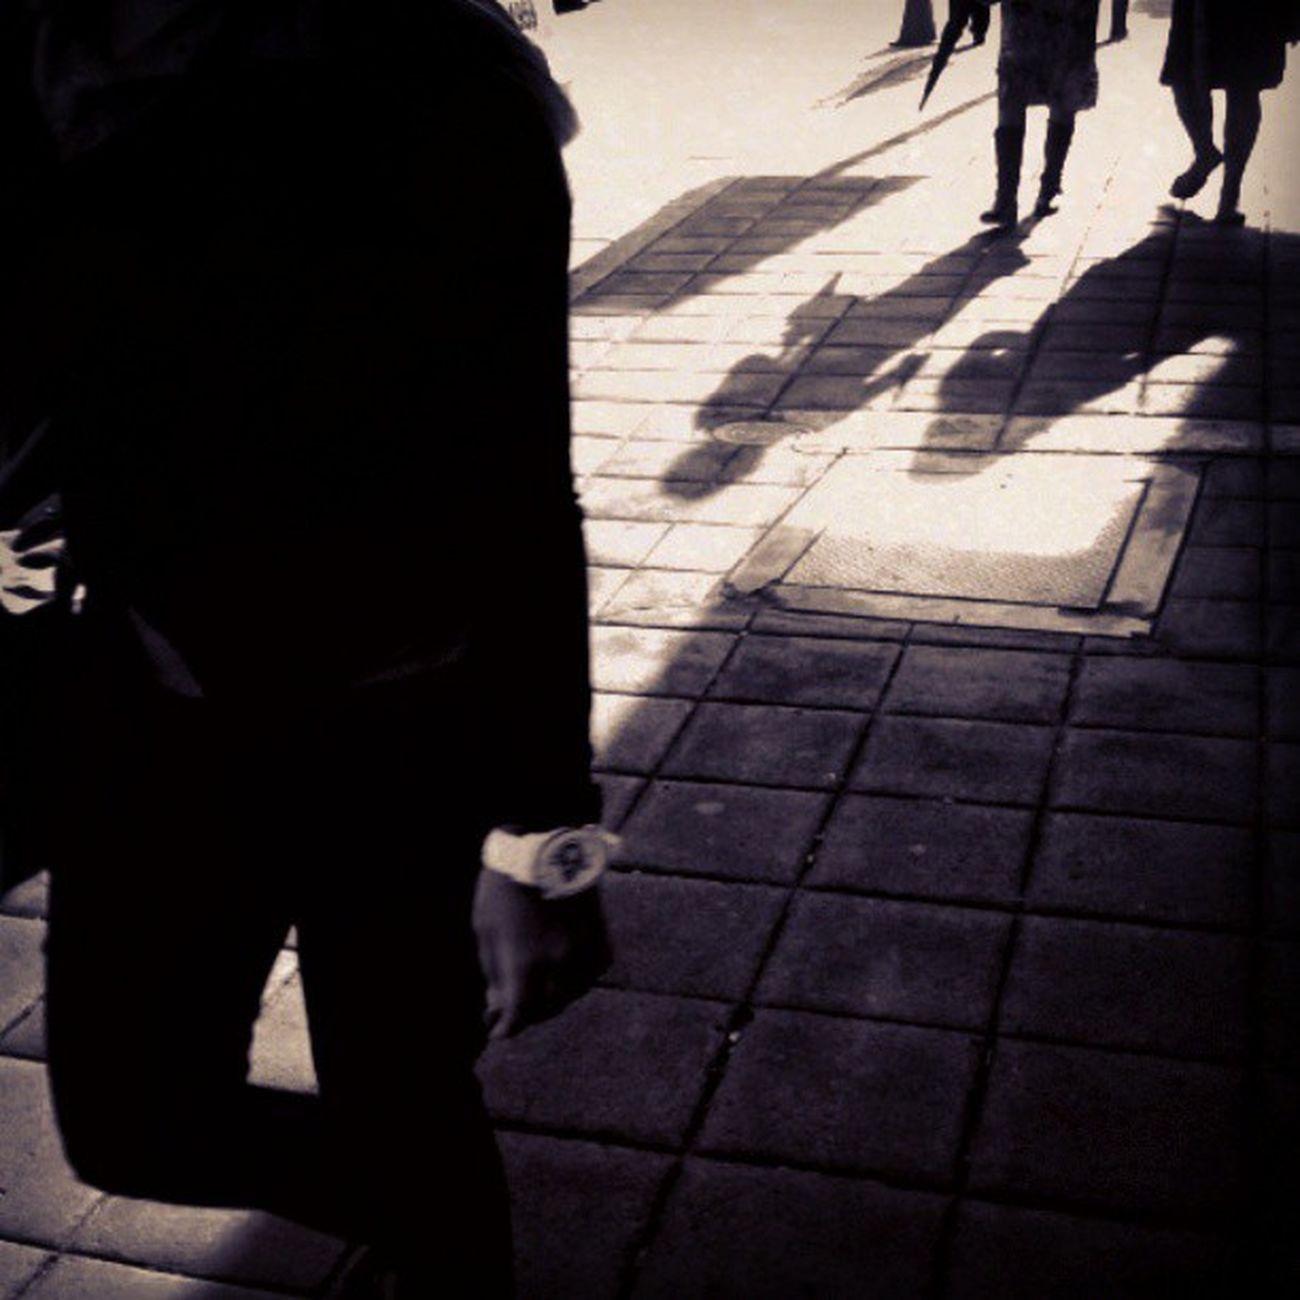 Samsungphotographer Streetphoto Igers Bw blancoynegro shadows sombras losteques